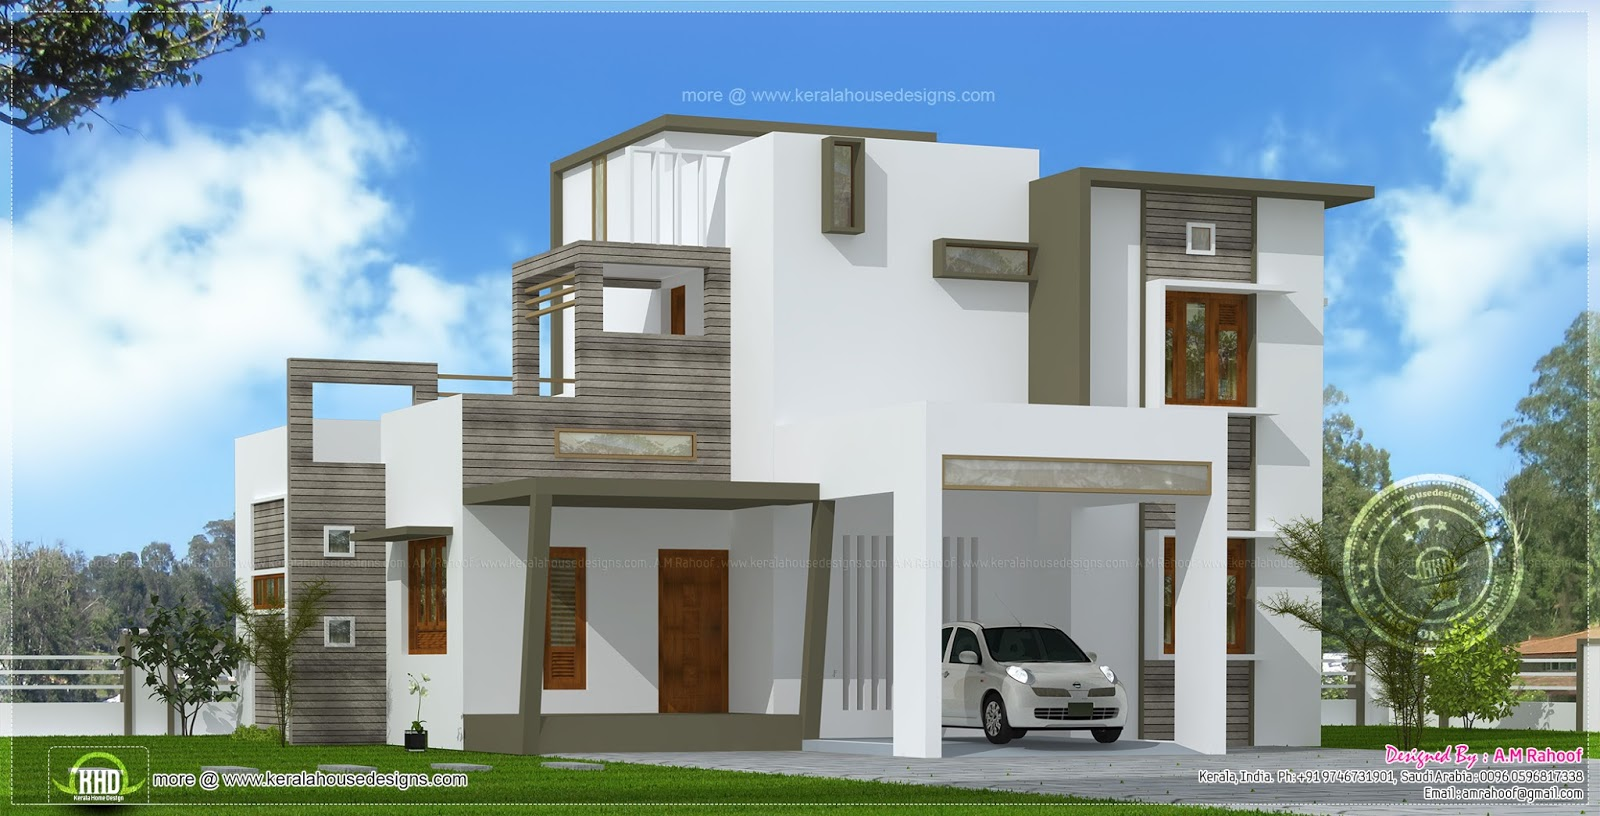 Contemporary style house in 2300 square feet kerala home design and floor plans - Contemporary house designs ...